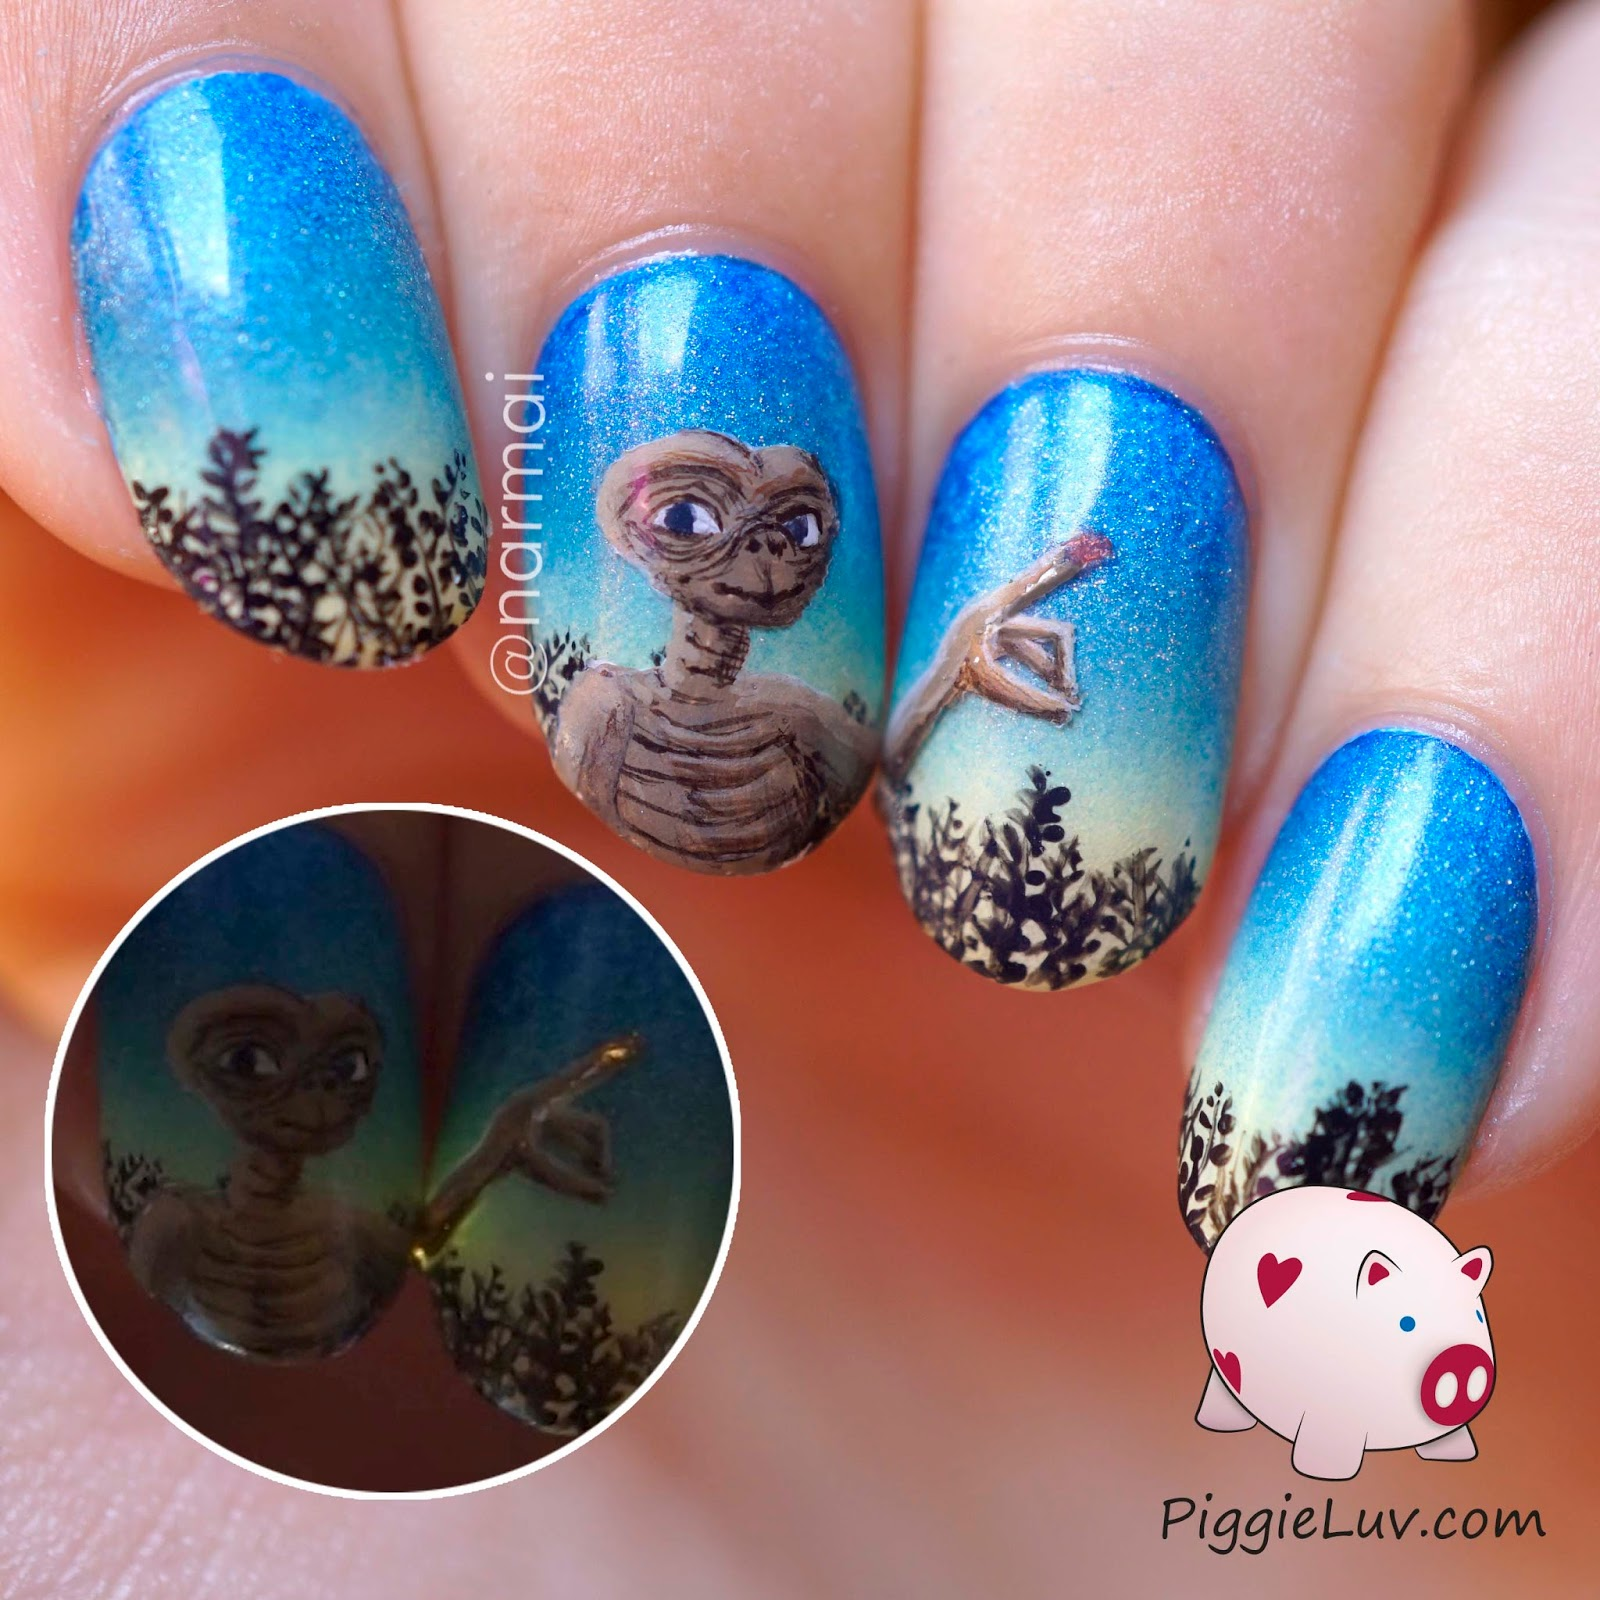 Piggieluv nail art gallery et phone home prinsesfo Images